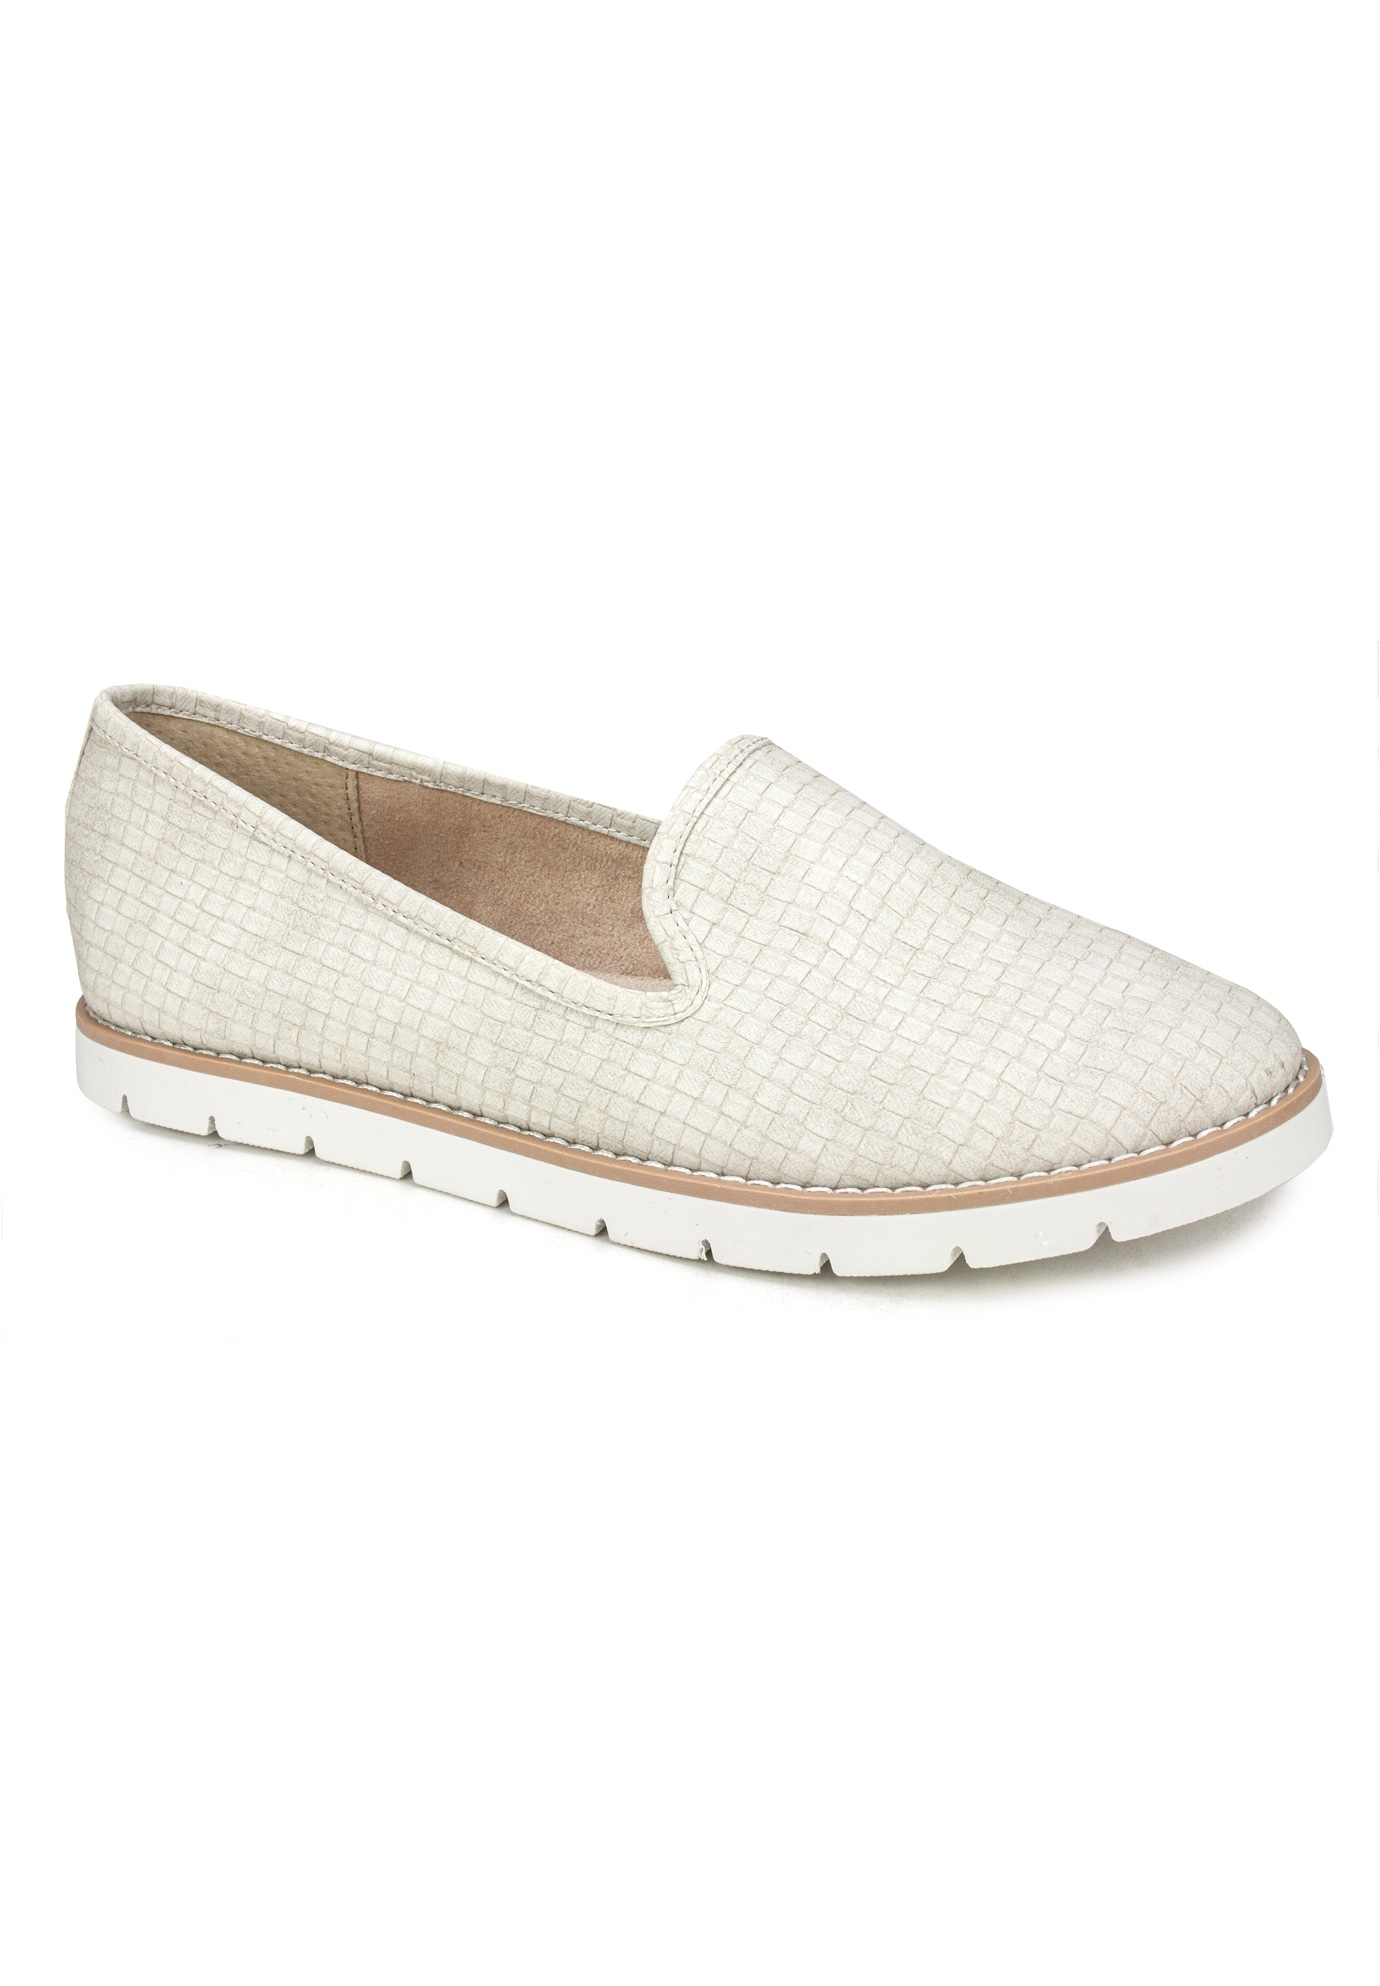 Denny Loafer Flat ,